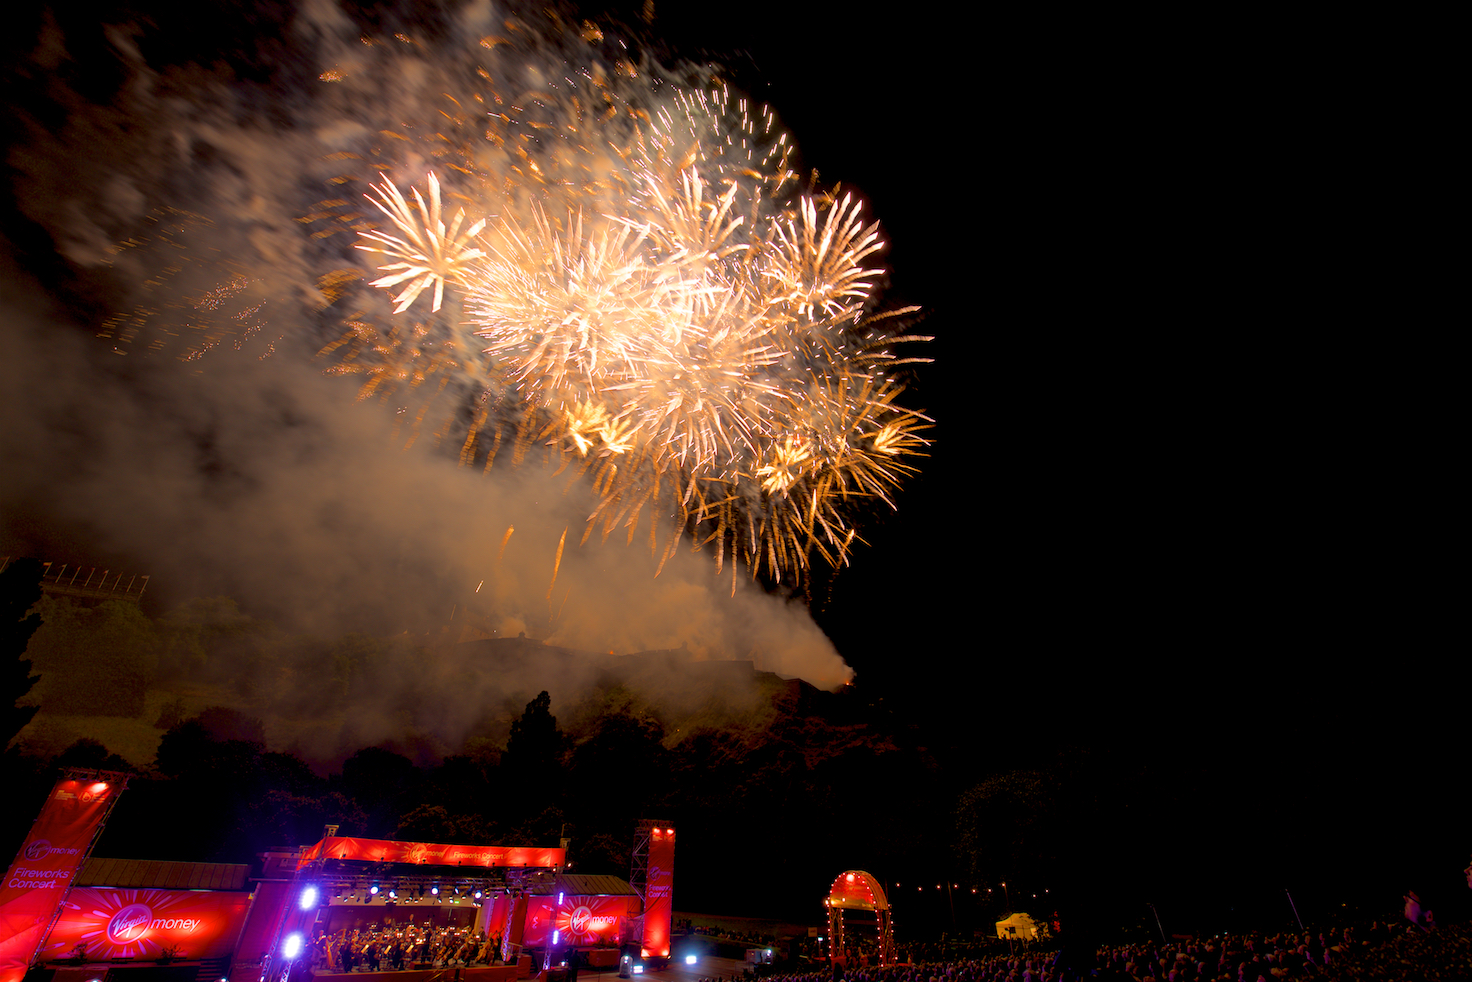 virgin-money-fireworks-concert-edinburgh-castleedinburgh-international-festival-edinburgh-castle-29th-august-2016-14